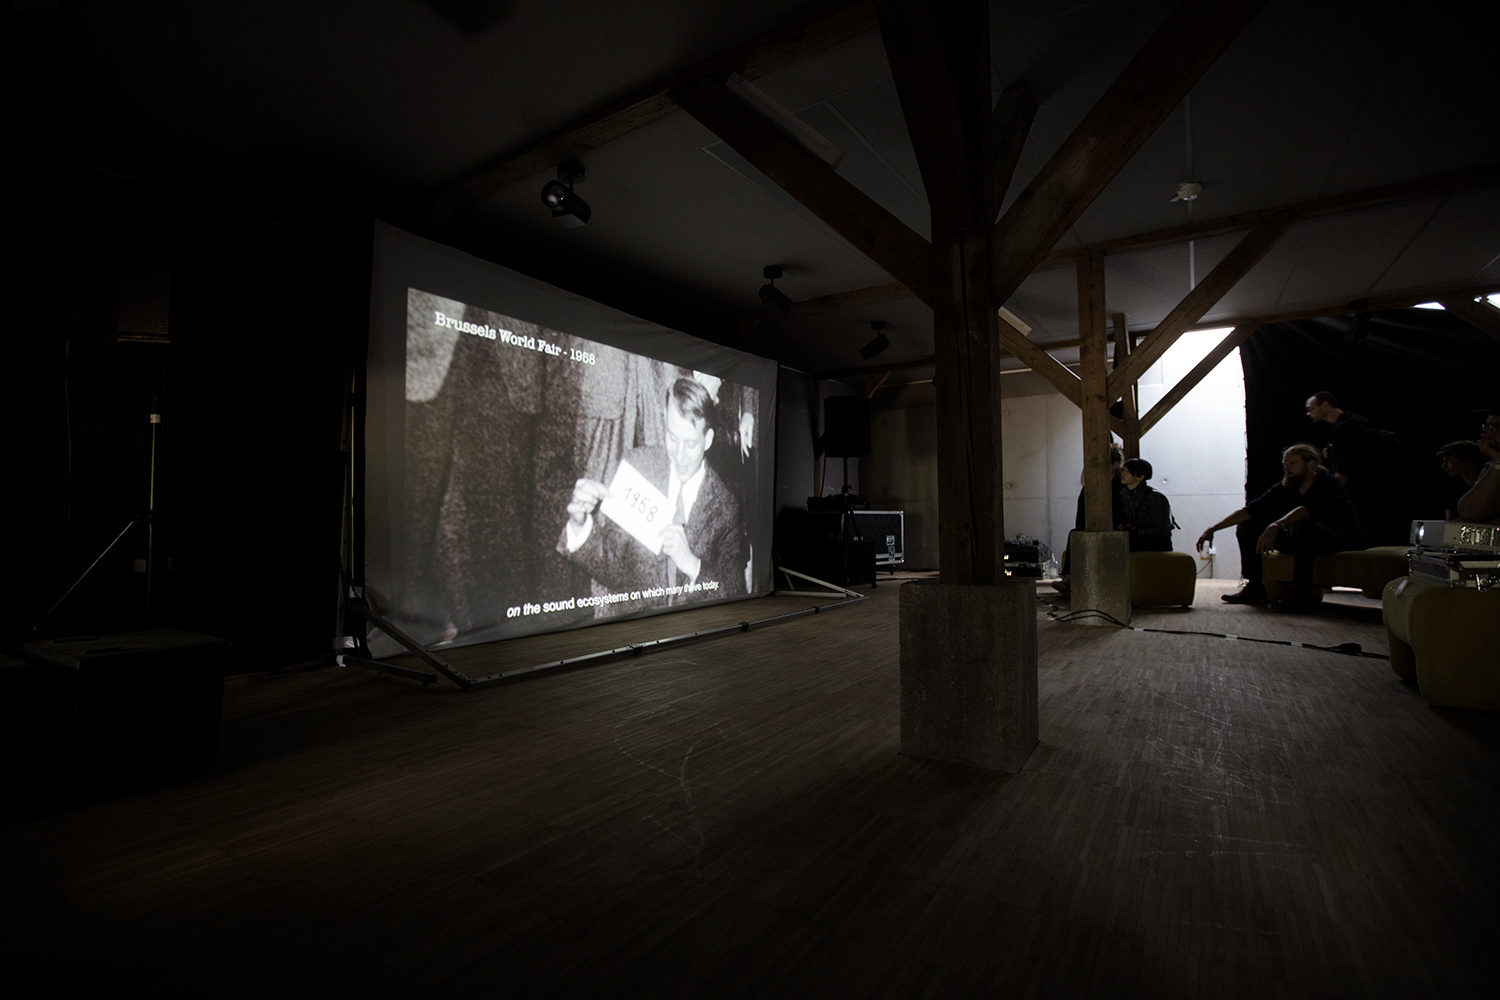 All Sounds Considered by Laurent Orseau - Meakusma Festival - Alter Schlachthof - Eupen, Belgium #4